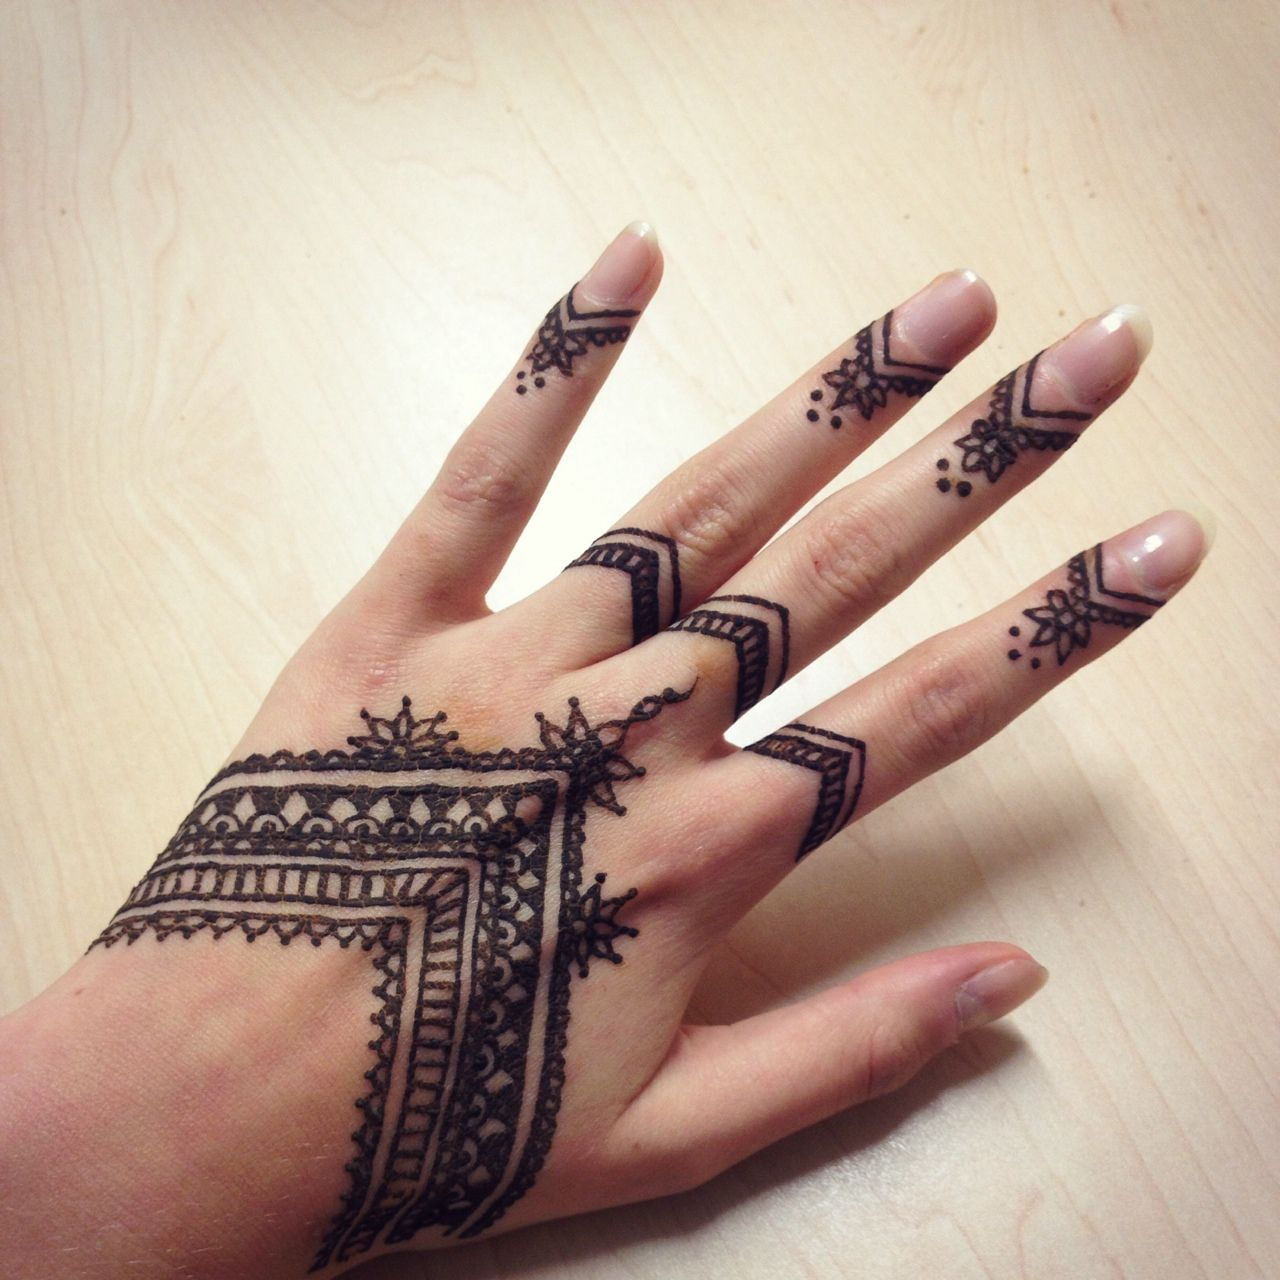 henna tattoo tumblr henna ideas pinterest hennas tattoo and henna designs. Black Bedroom Furniture Sets. Home Design Ideas